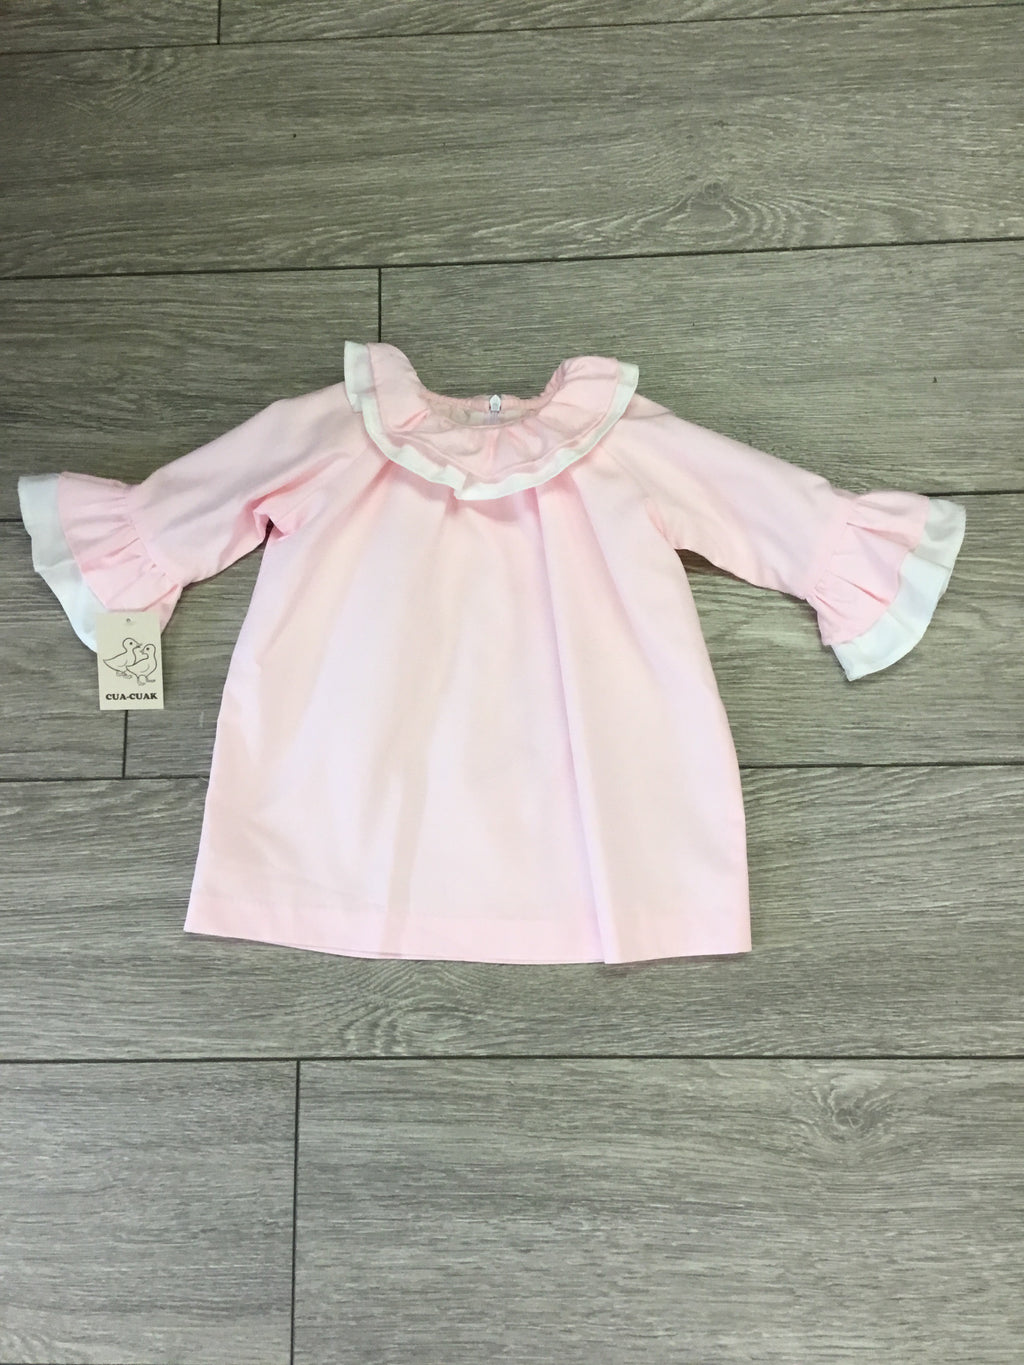 AW18 Cua Cuak Girls Pink Dress 9260